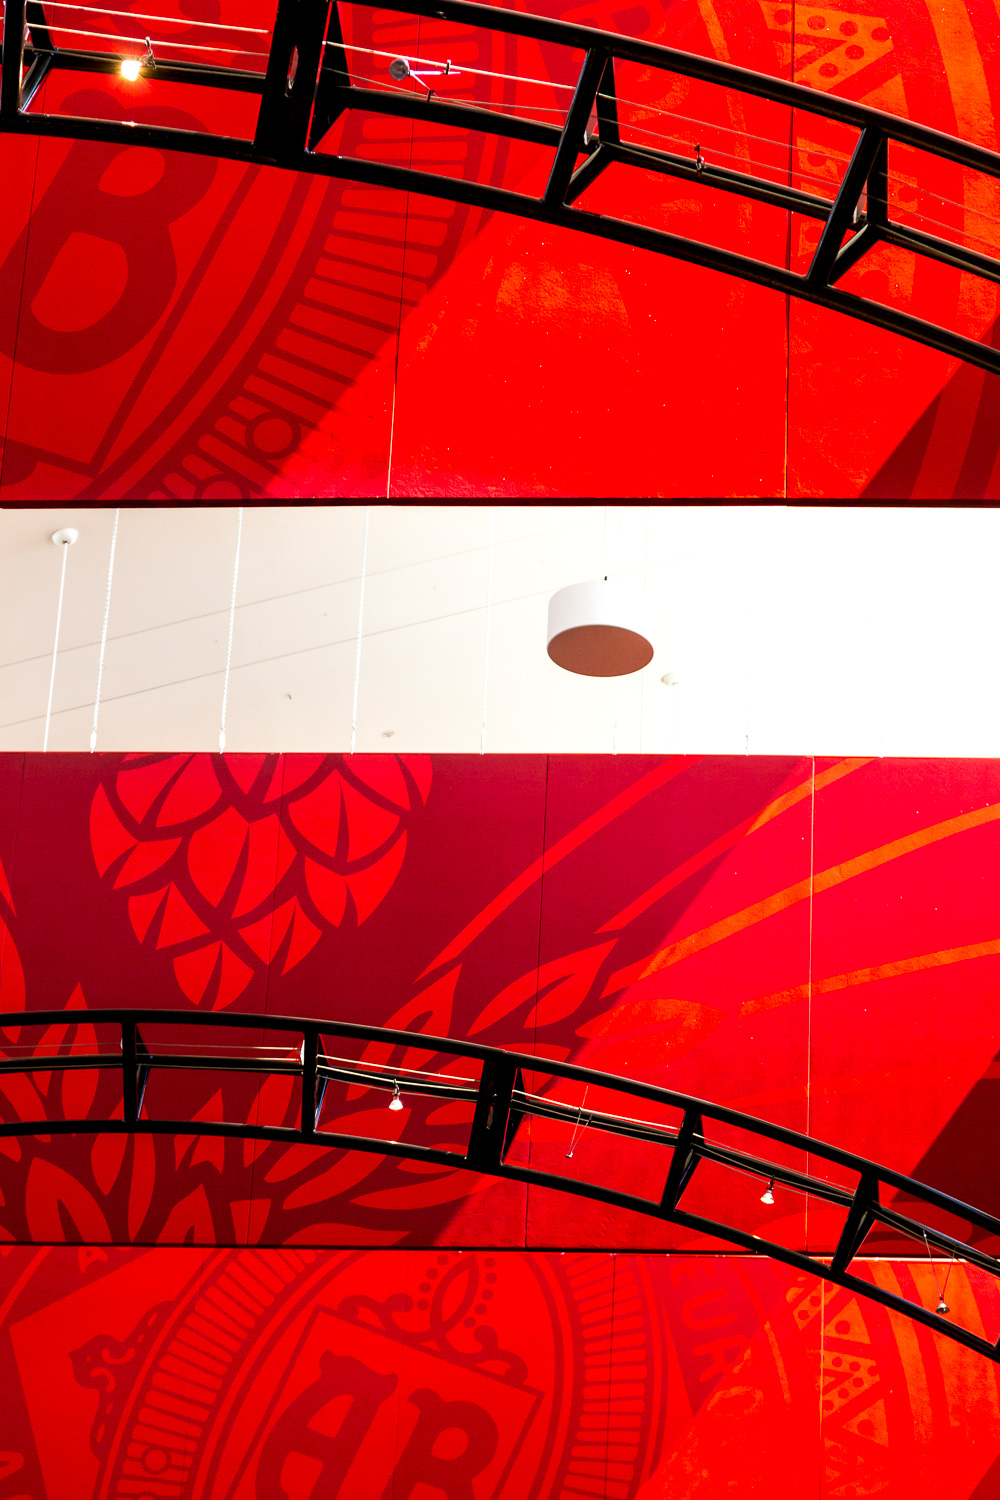 Banners and structural elements at the Visitor Center ceiling provide shape and color for this abstract.